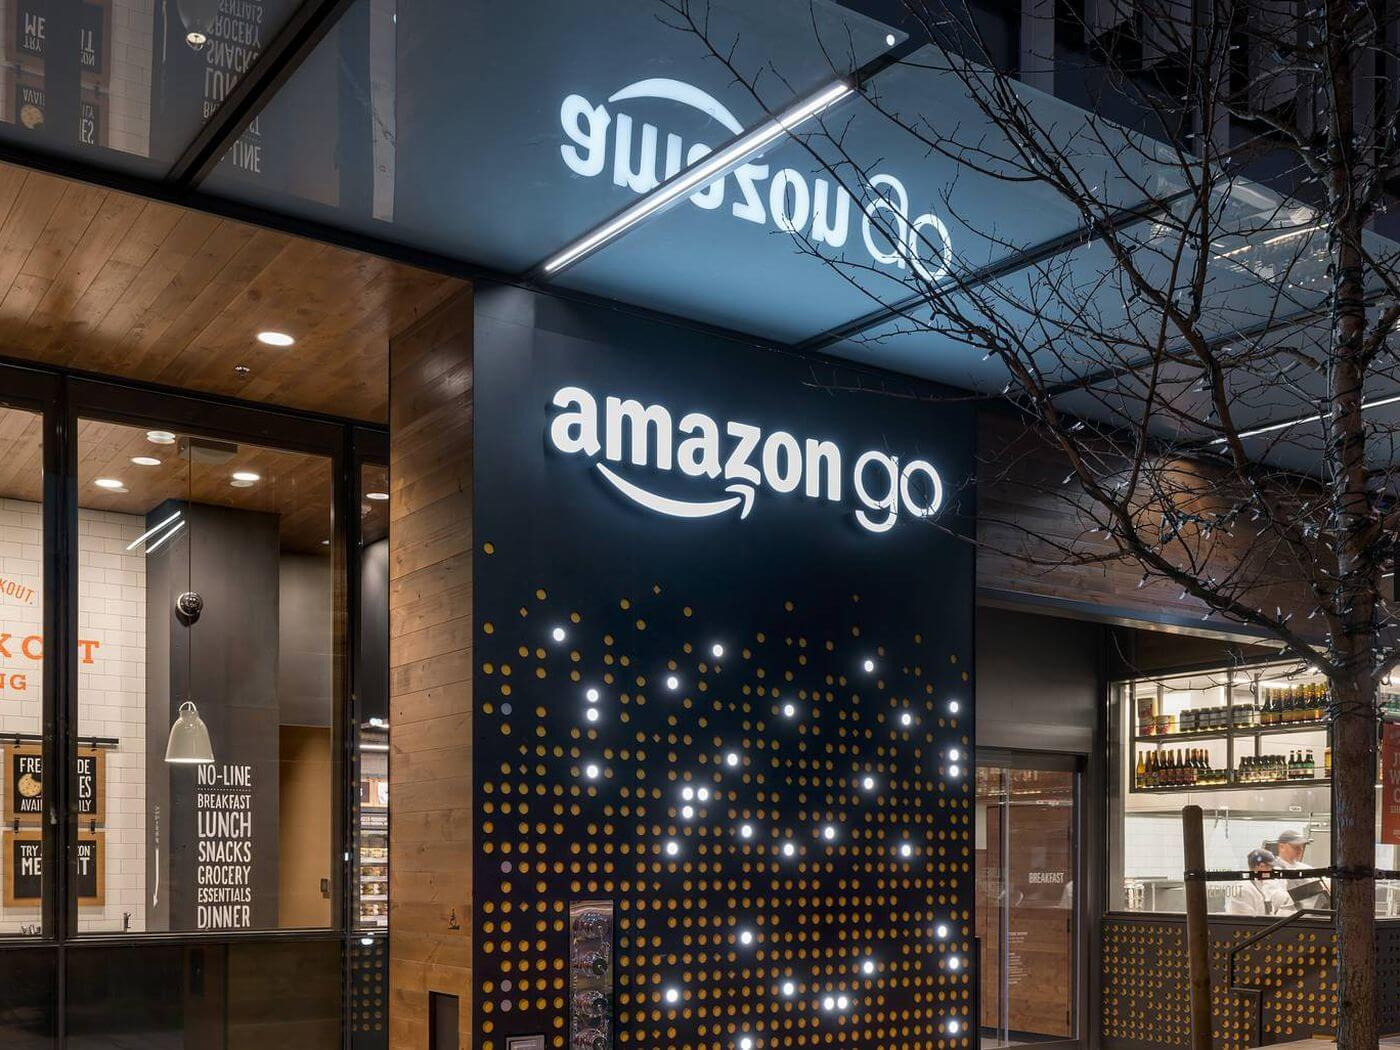 Amazon Said to Launch Up to 3000 AmazonGo Cashierless Stores by 2021